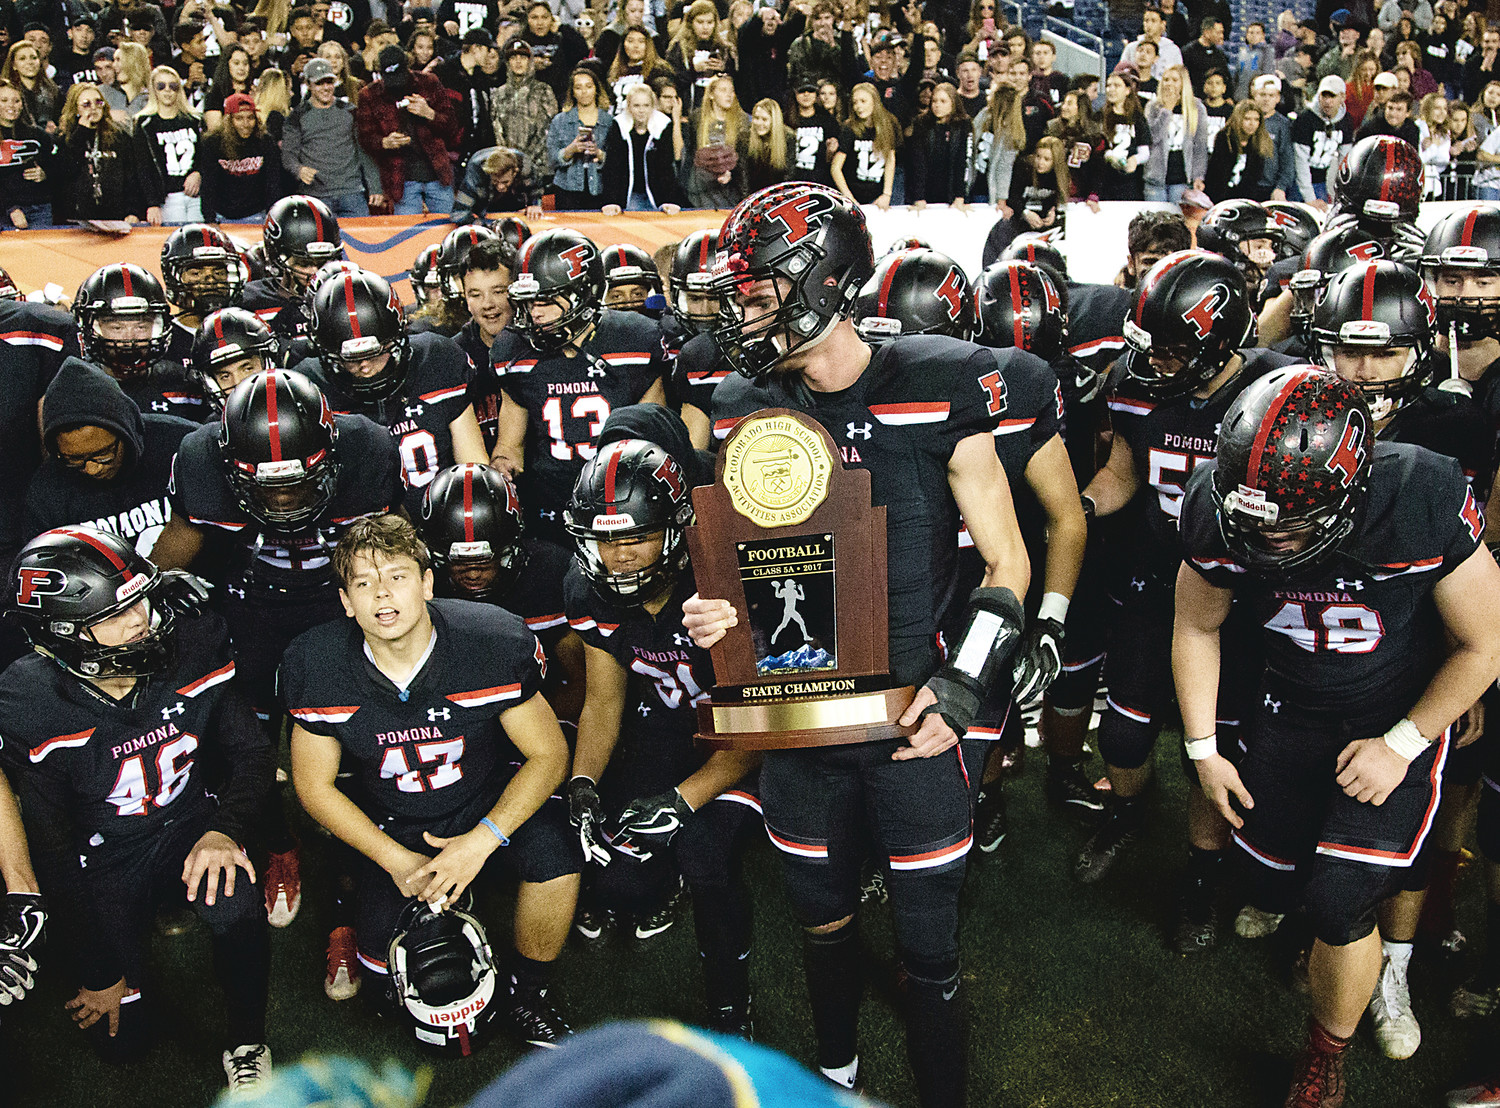 Below, Pomona senior quarterback Ryan Marquez holds on tight to the Class 5A football state championship trophy as the Panthers get ready to poise for a team photo after the win.